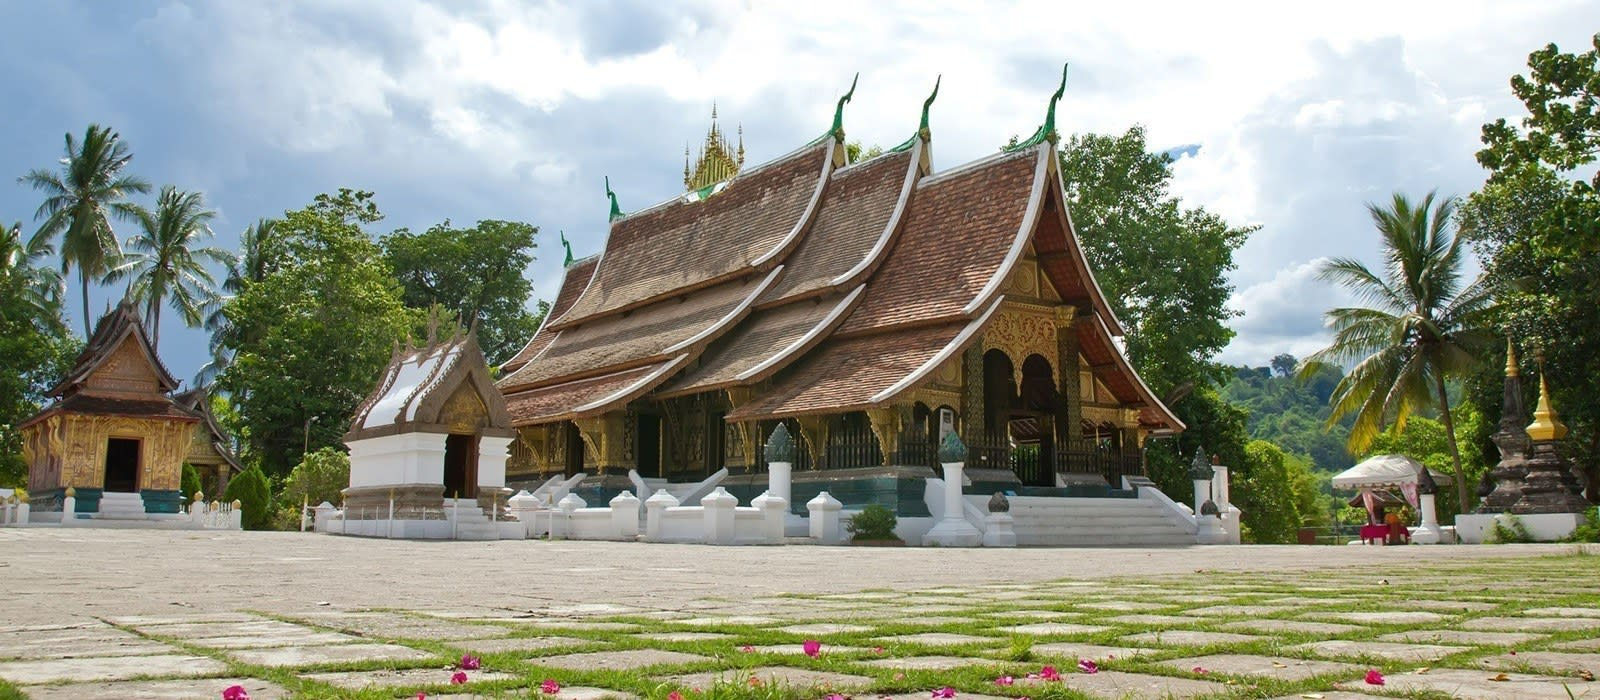 Live Laos: From Monks to Mekong Tour Trip 1